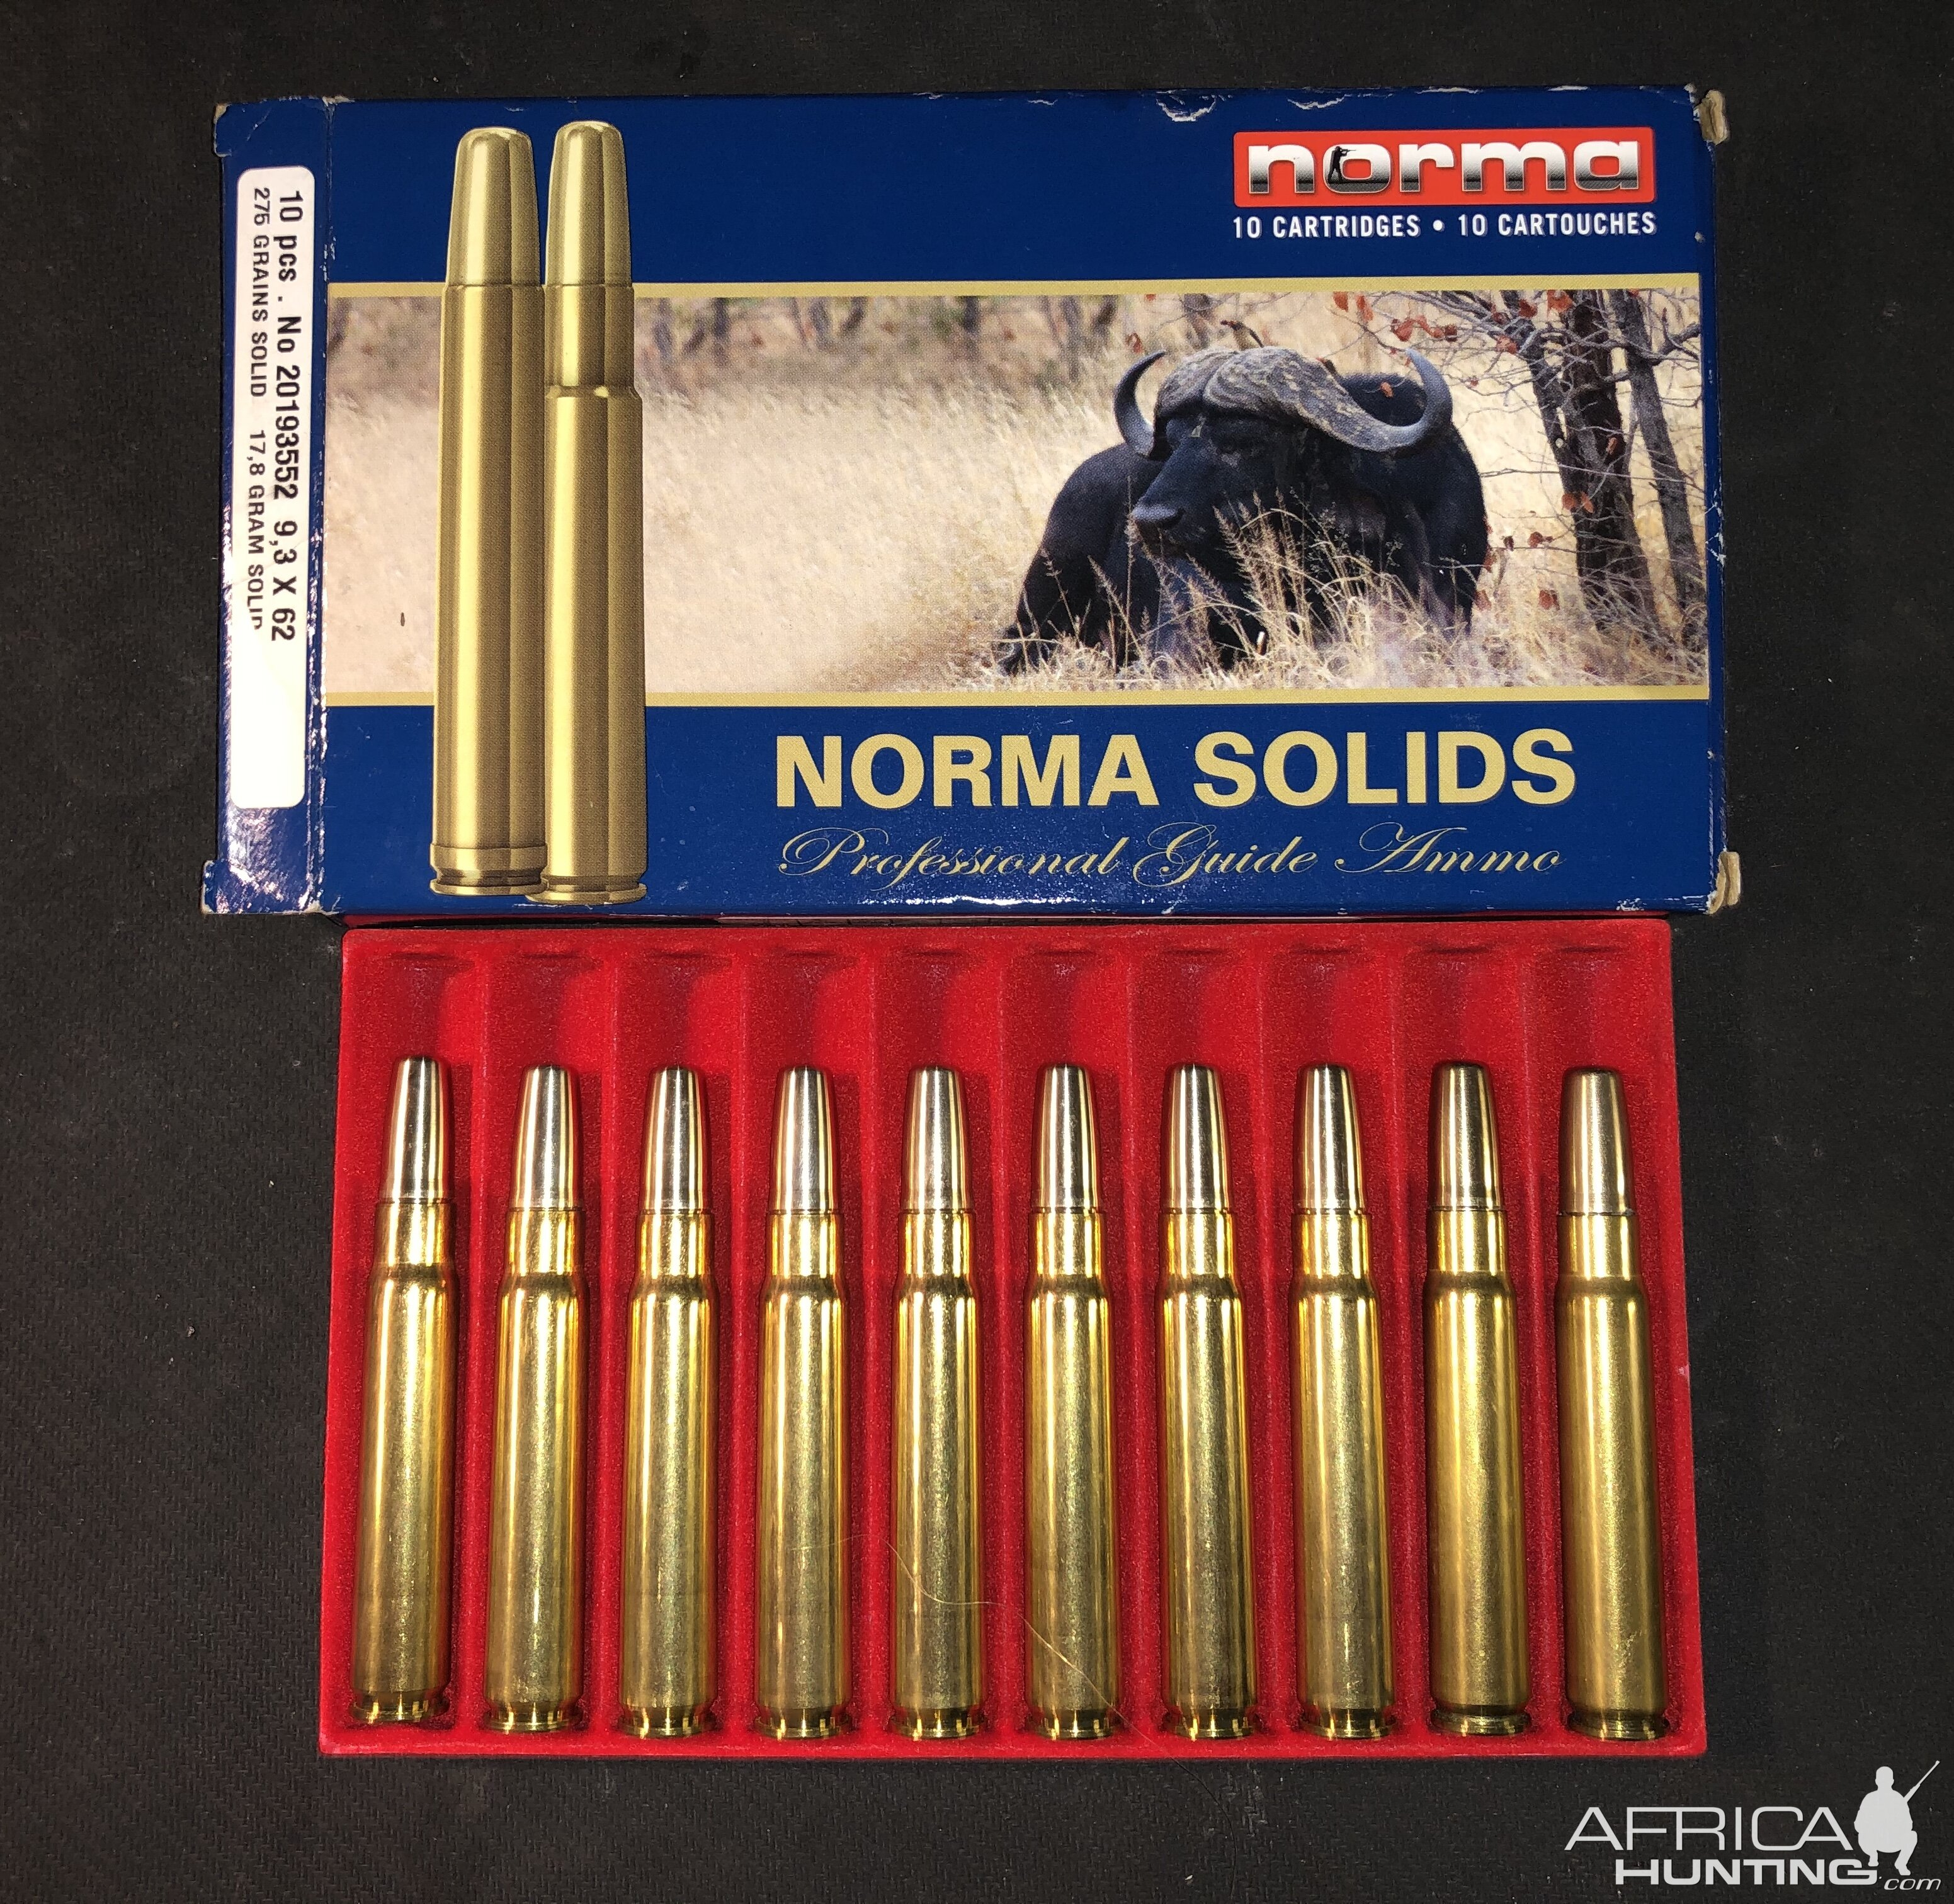 Norma factory 275 solids for the 9.3x62 Professional guide ammo